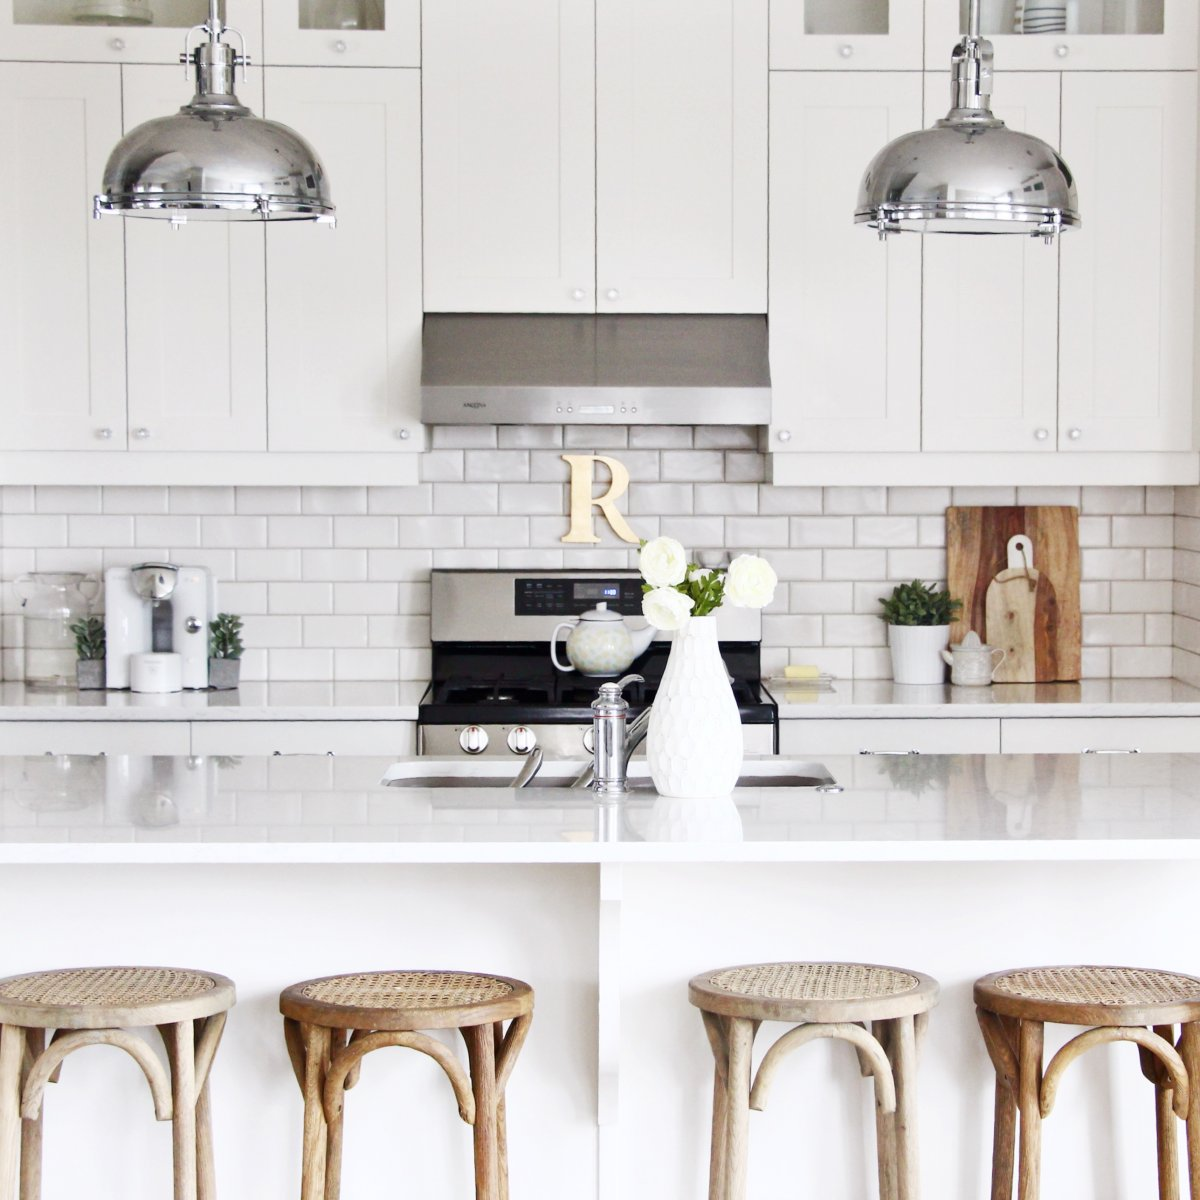 How to Style Your New Kitchen - Part 1